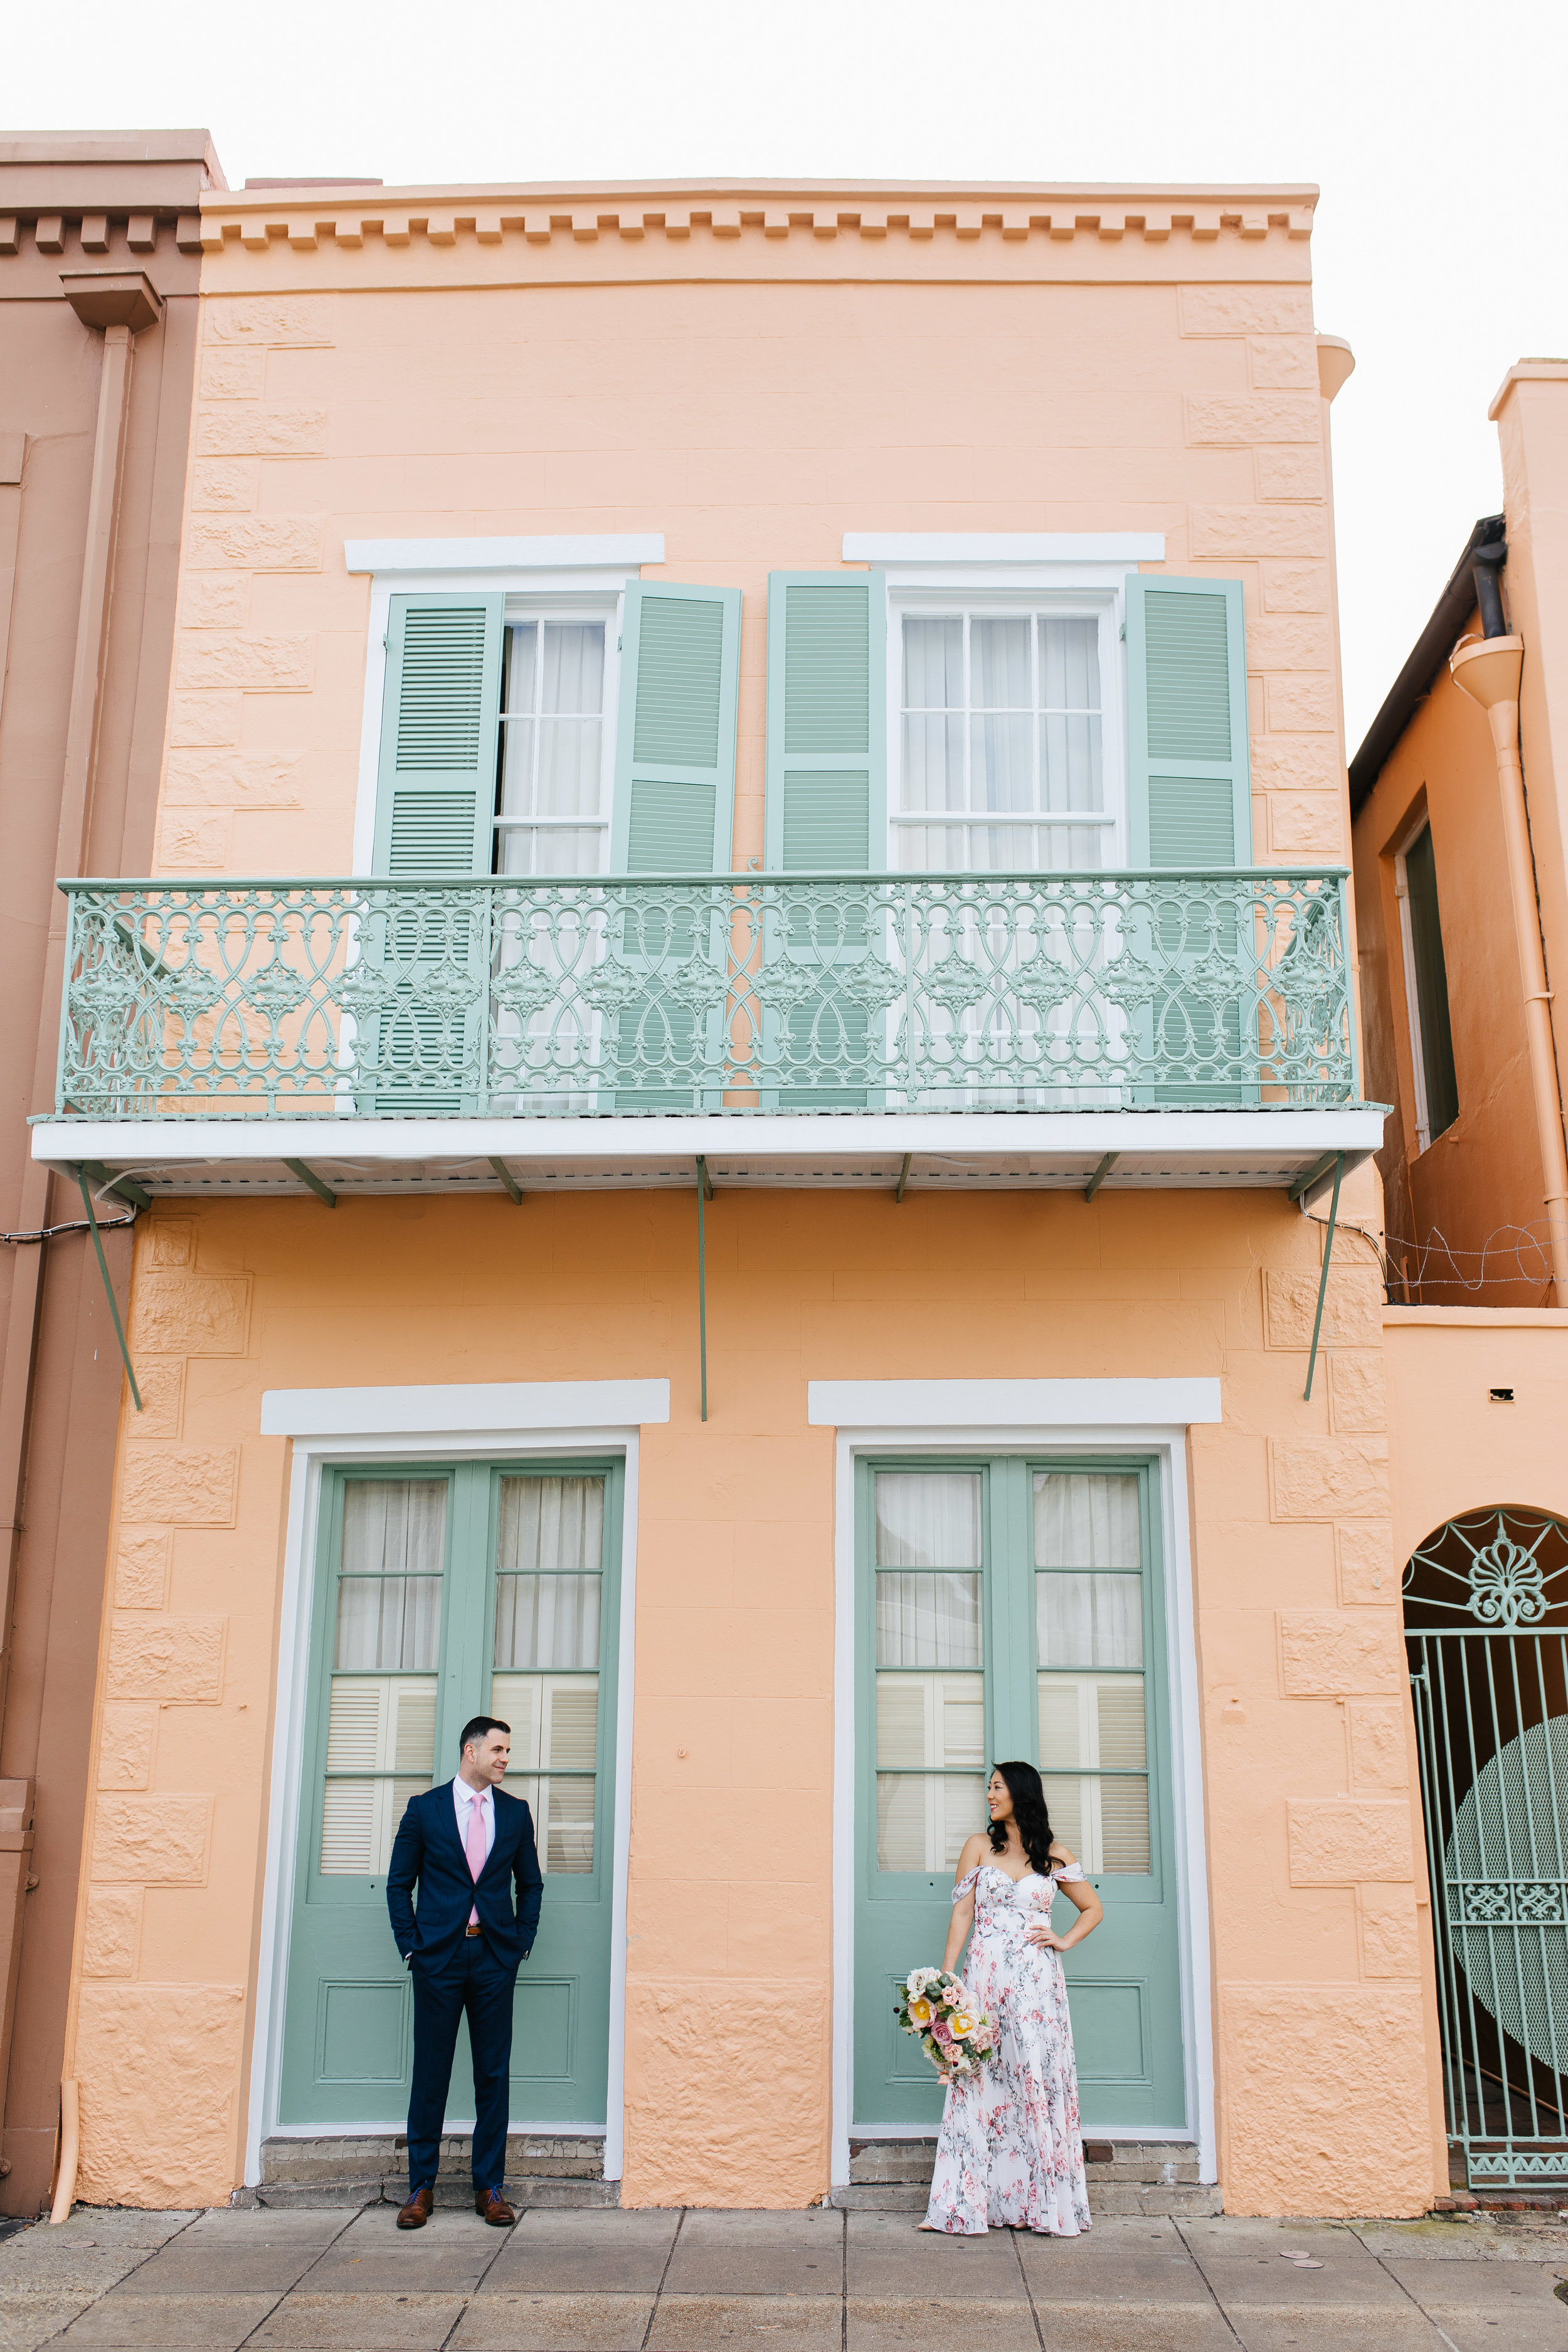 French Quarter Elopement New Orleans Wedding Photographer Ashley Biltz Photography6.jpg